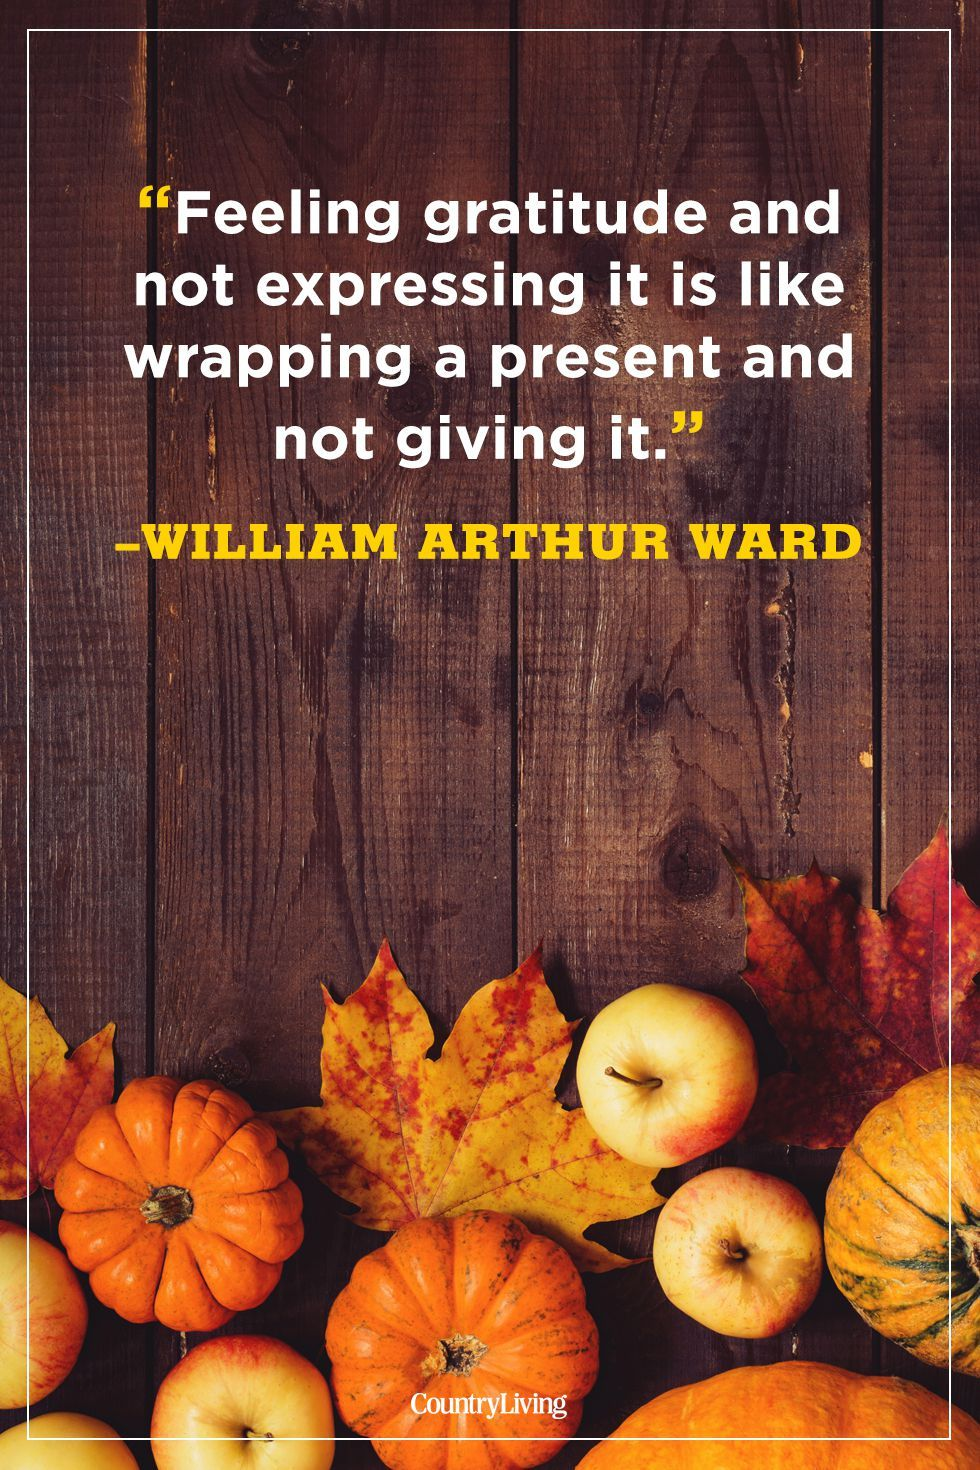 Give Your Family All The Feels On Turkey Day With These Heartfelt Thanksgiving Quotes Happy Thanksgiving Quotes Thanksgiving Quotes Thanksgiving Facts